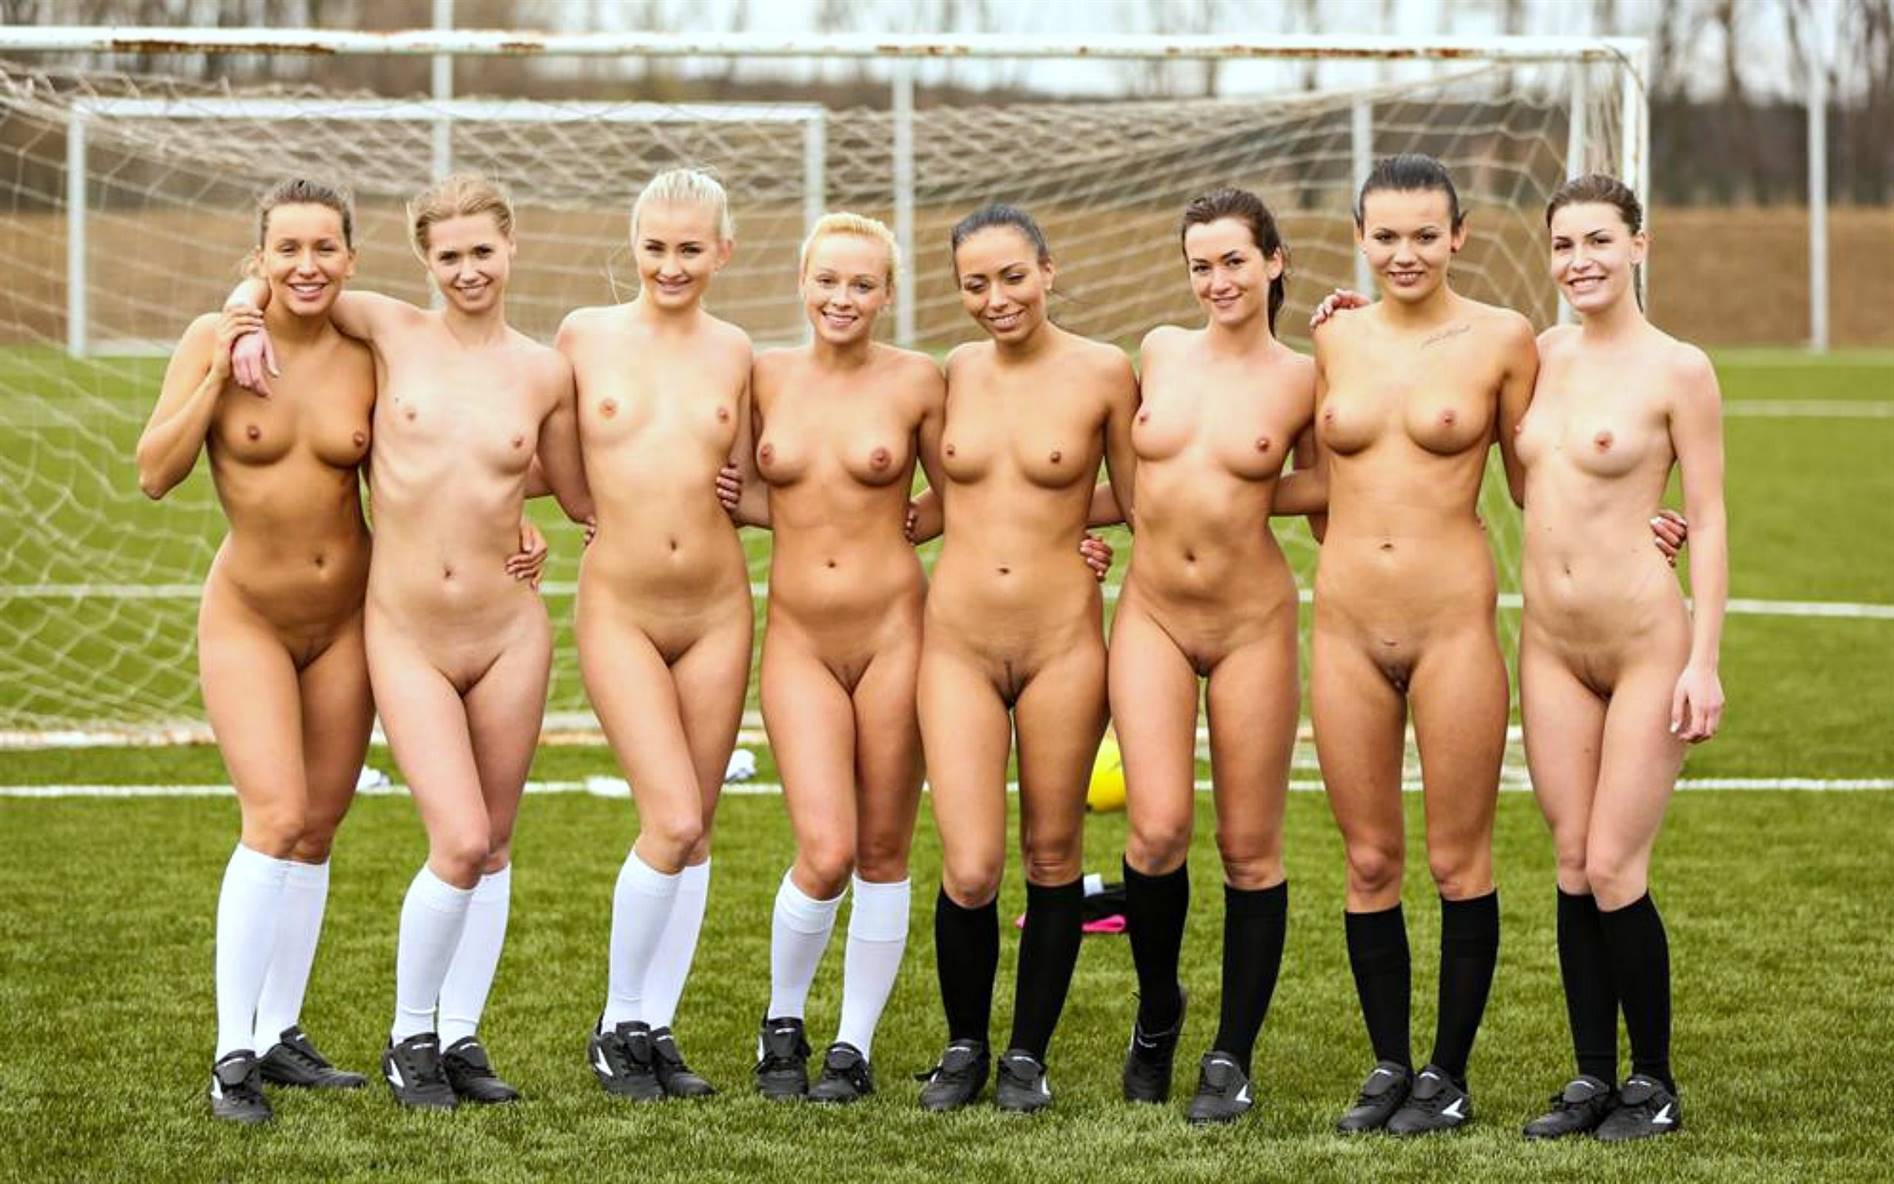 women-playing-nude-sports